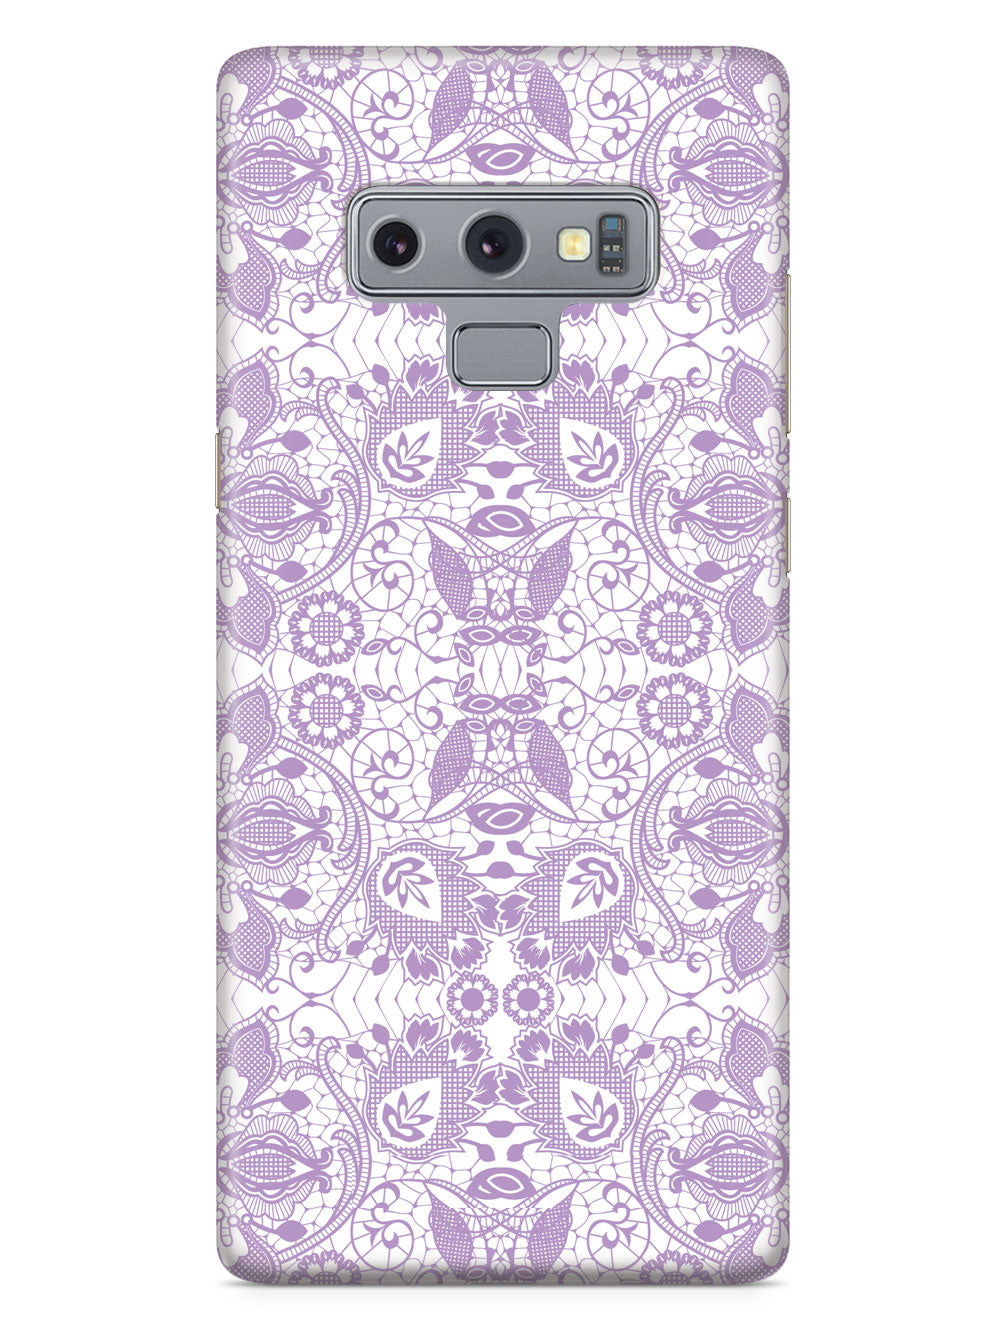 Lace Pattern - Lavender Case